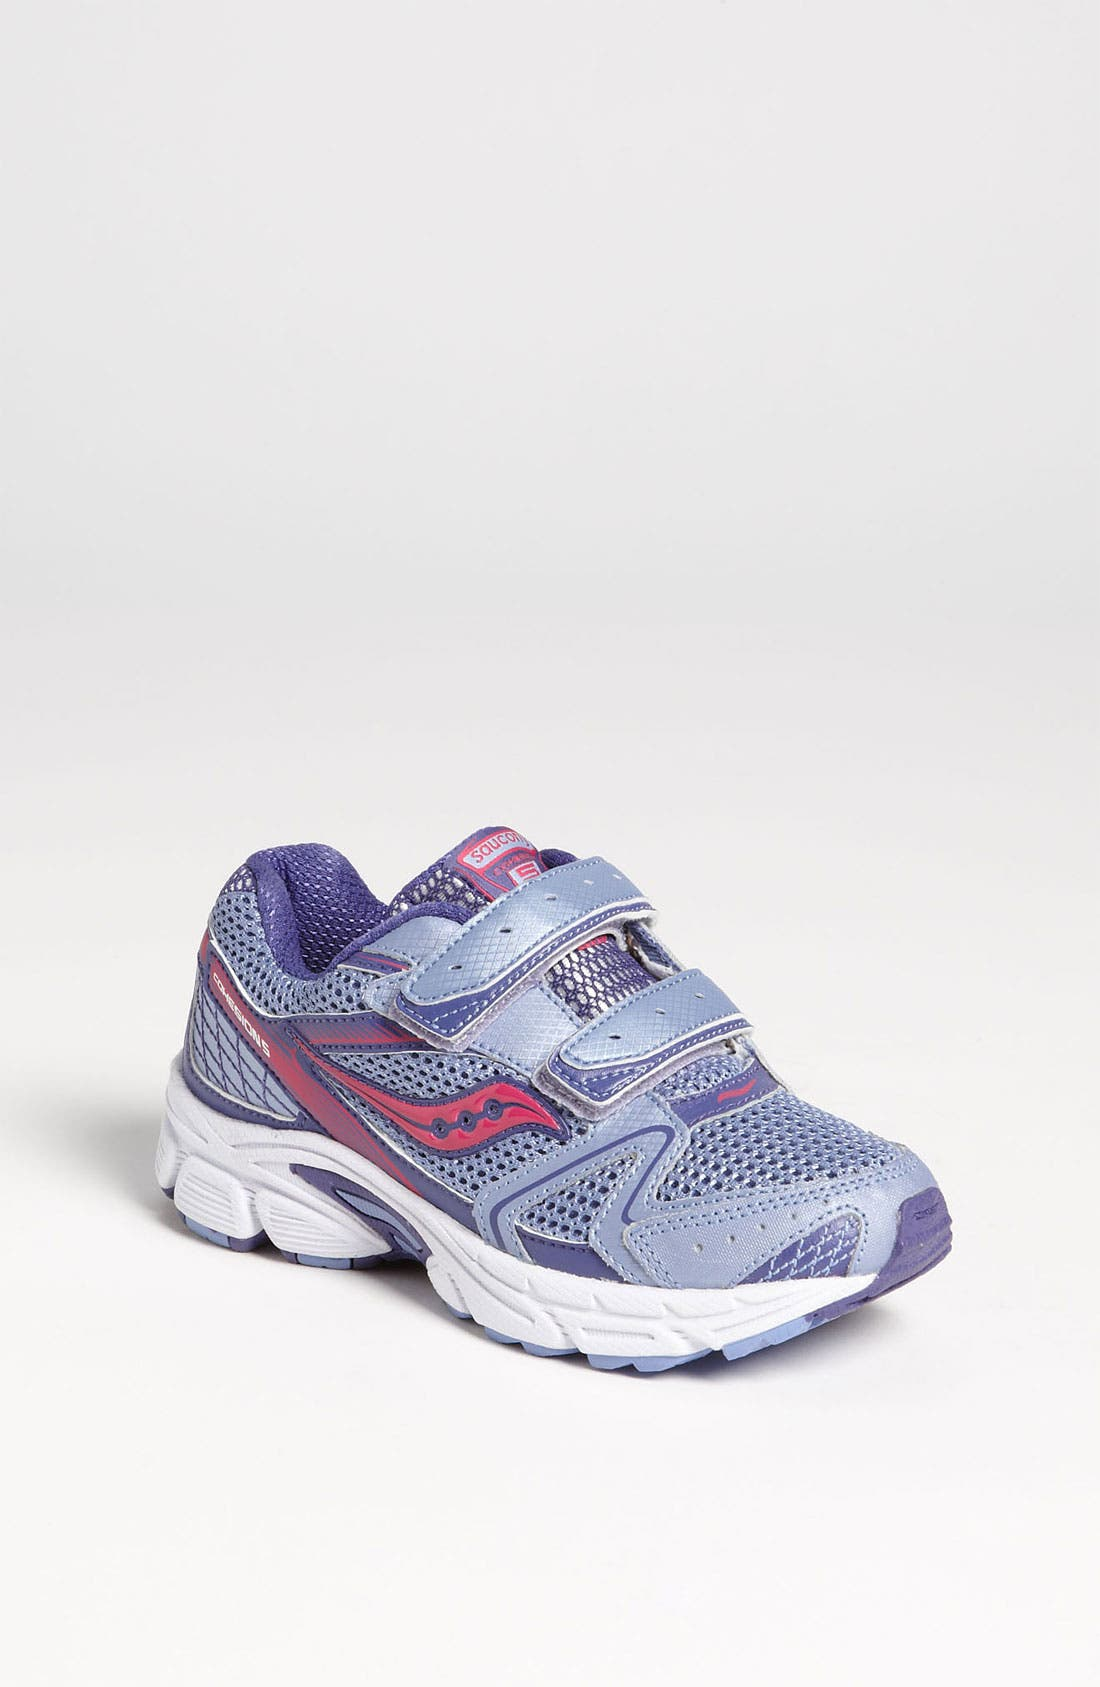 Main Image - Saucony 'Cohesion HL' Running Shoe (Toddler, Little Kid & Big Kid)